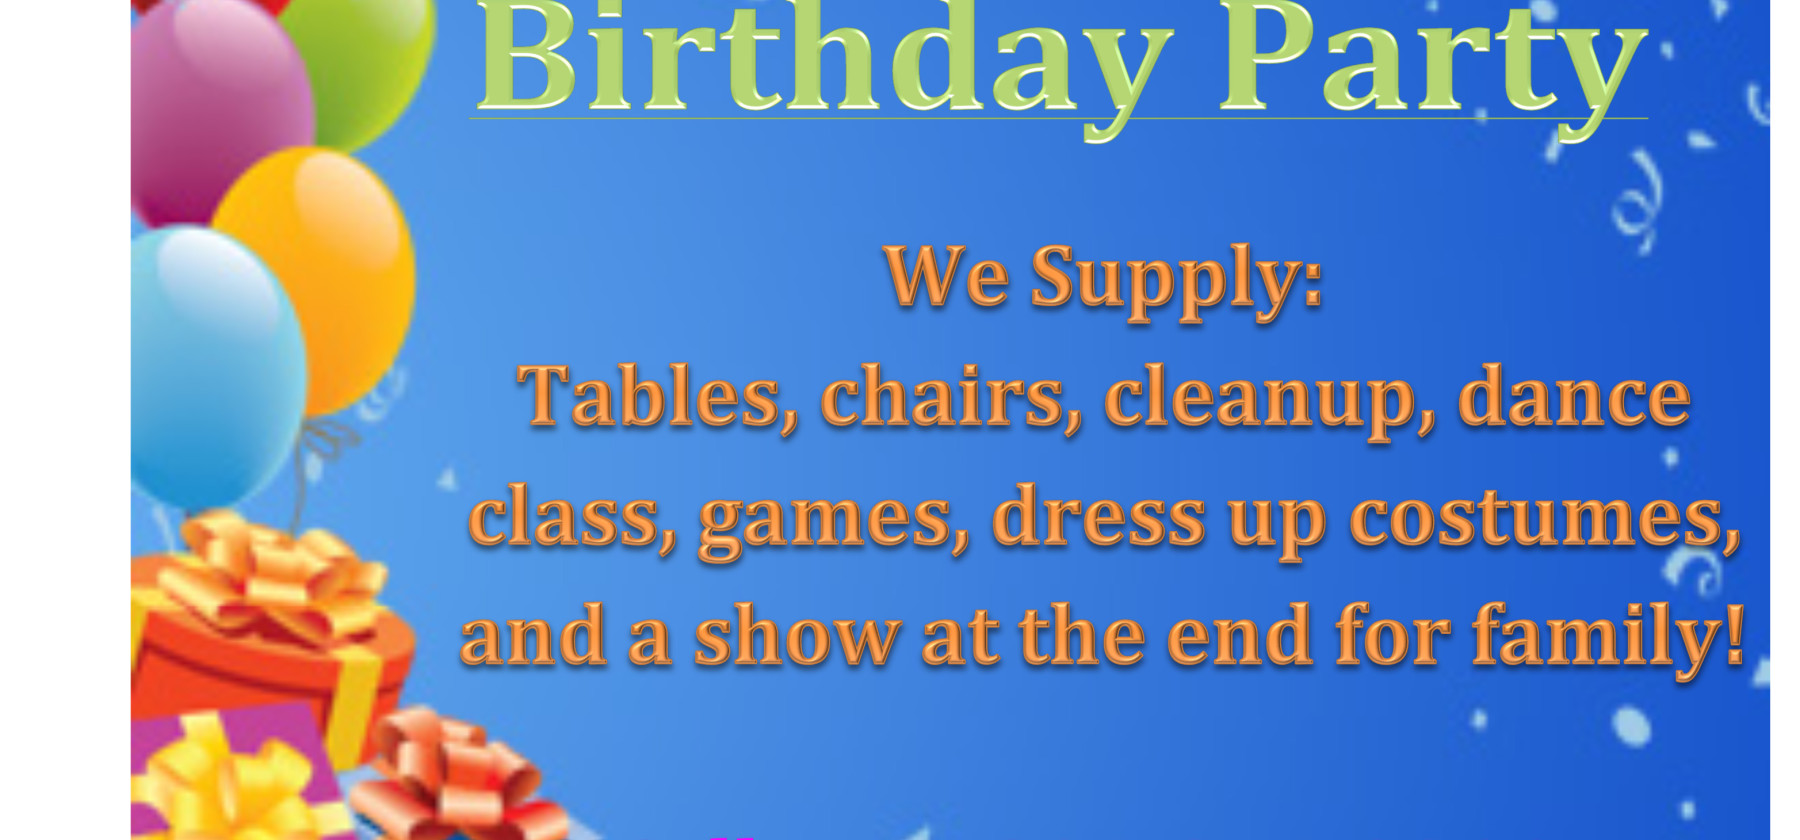 Microsoft Word - birthday party.docx